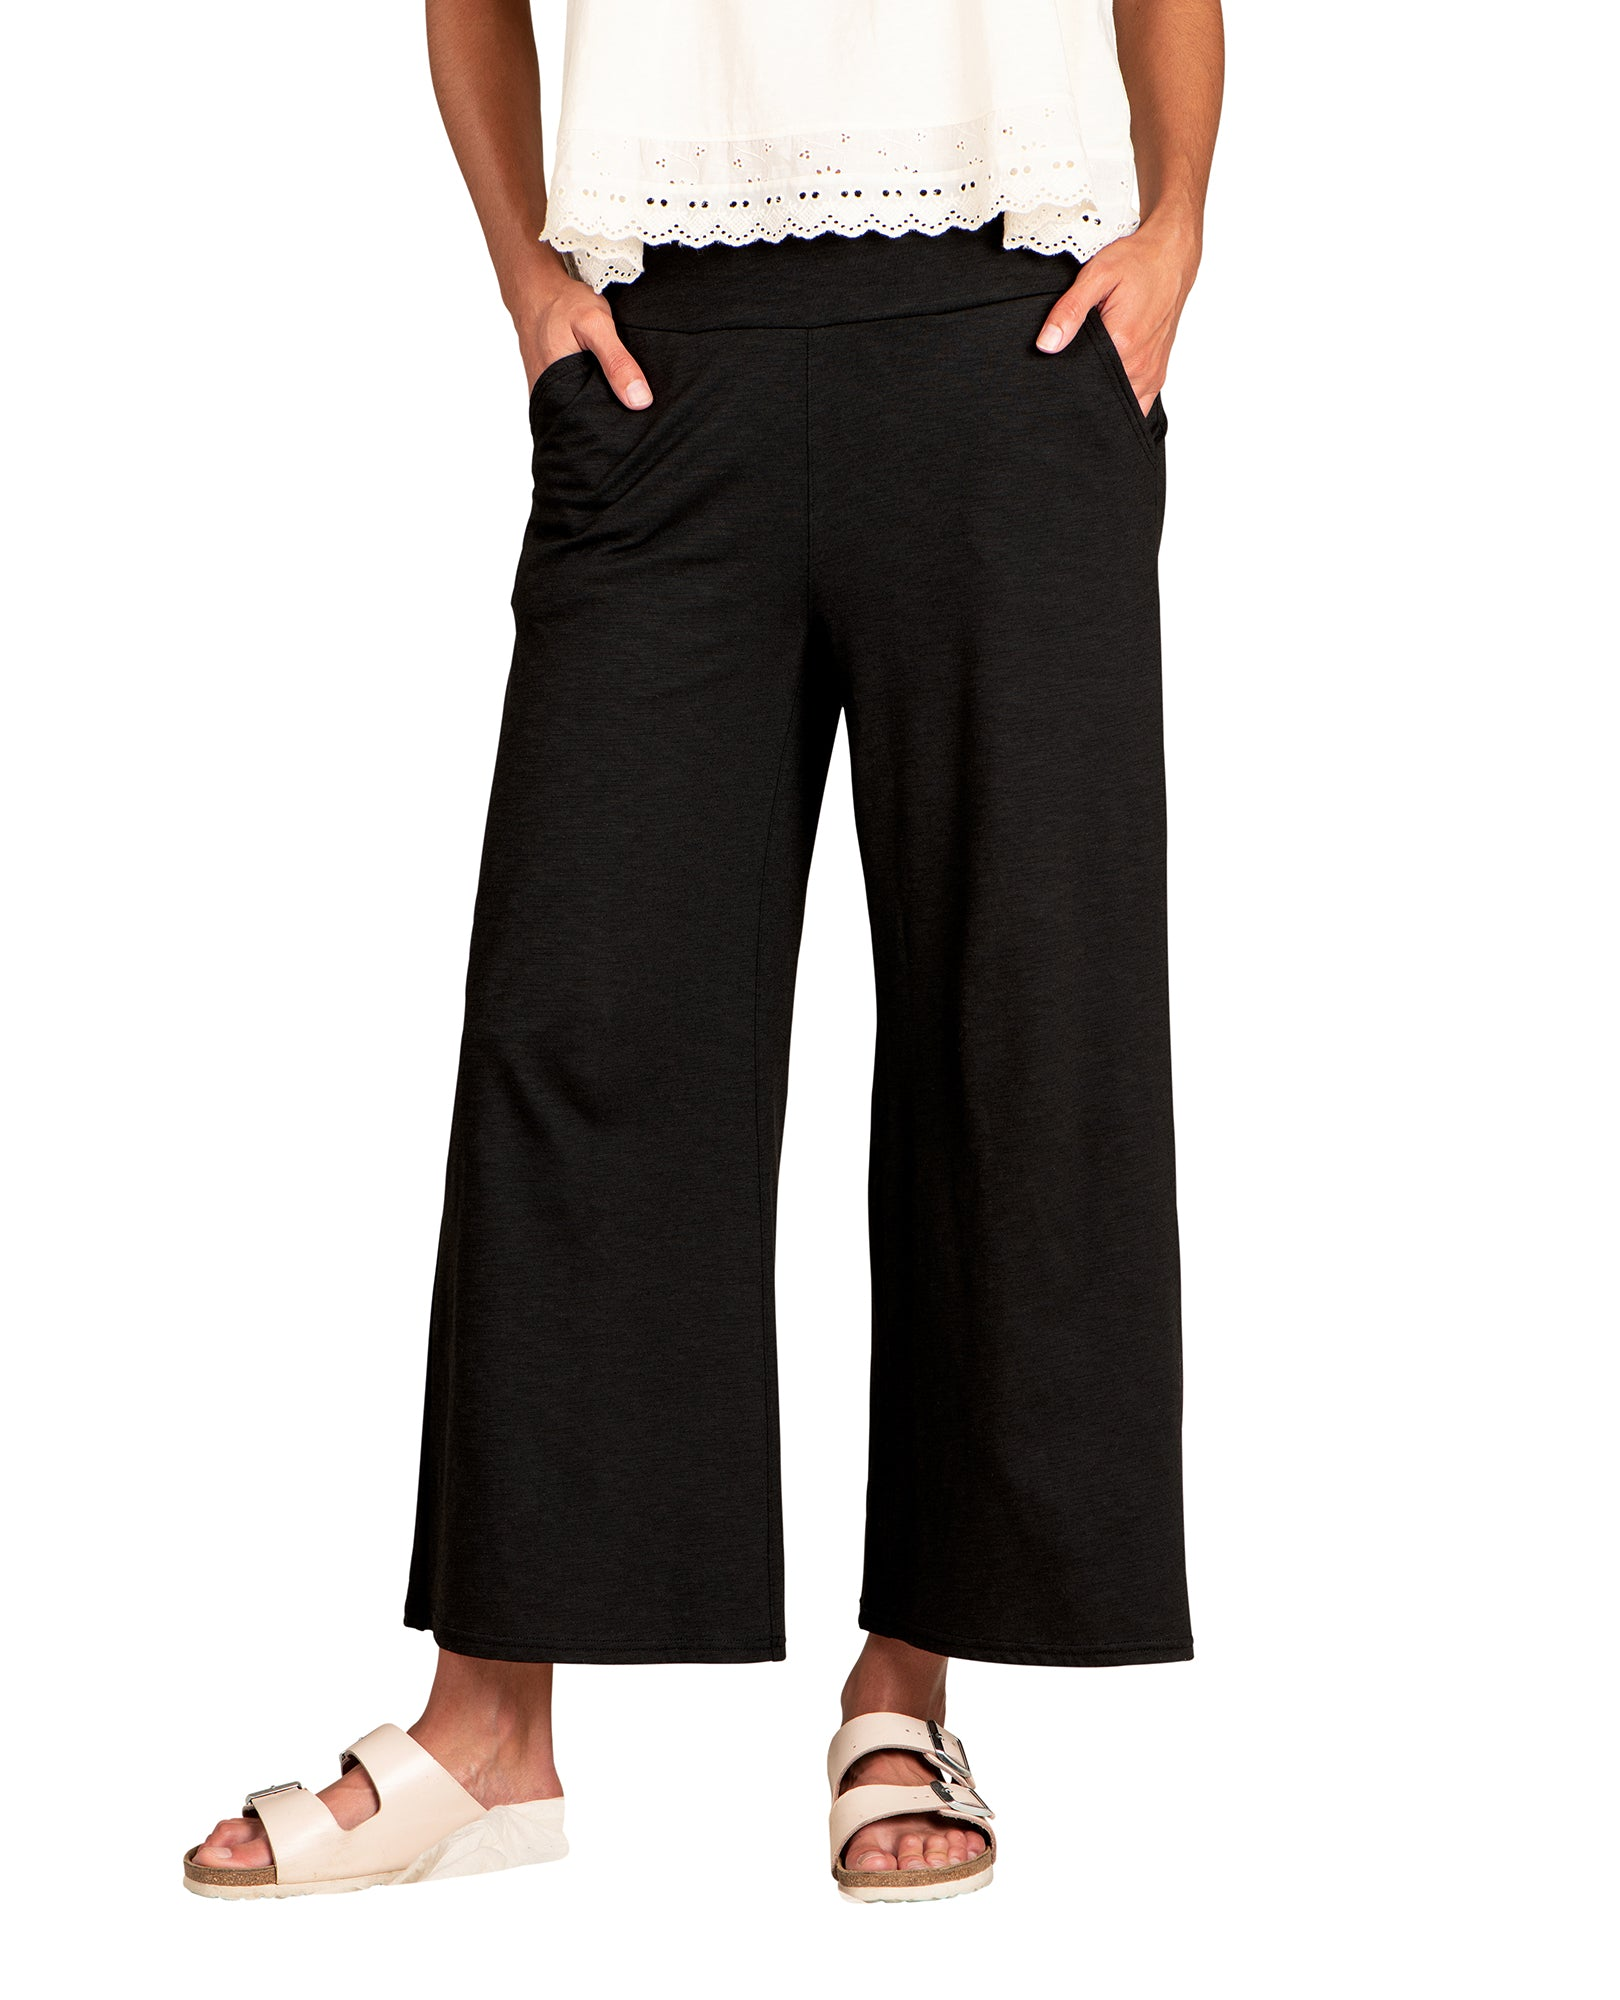 Elastic Waistband. Wide Length Pant. Slightly Cropped Fit.